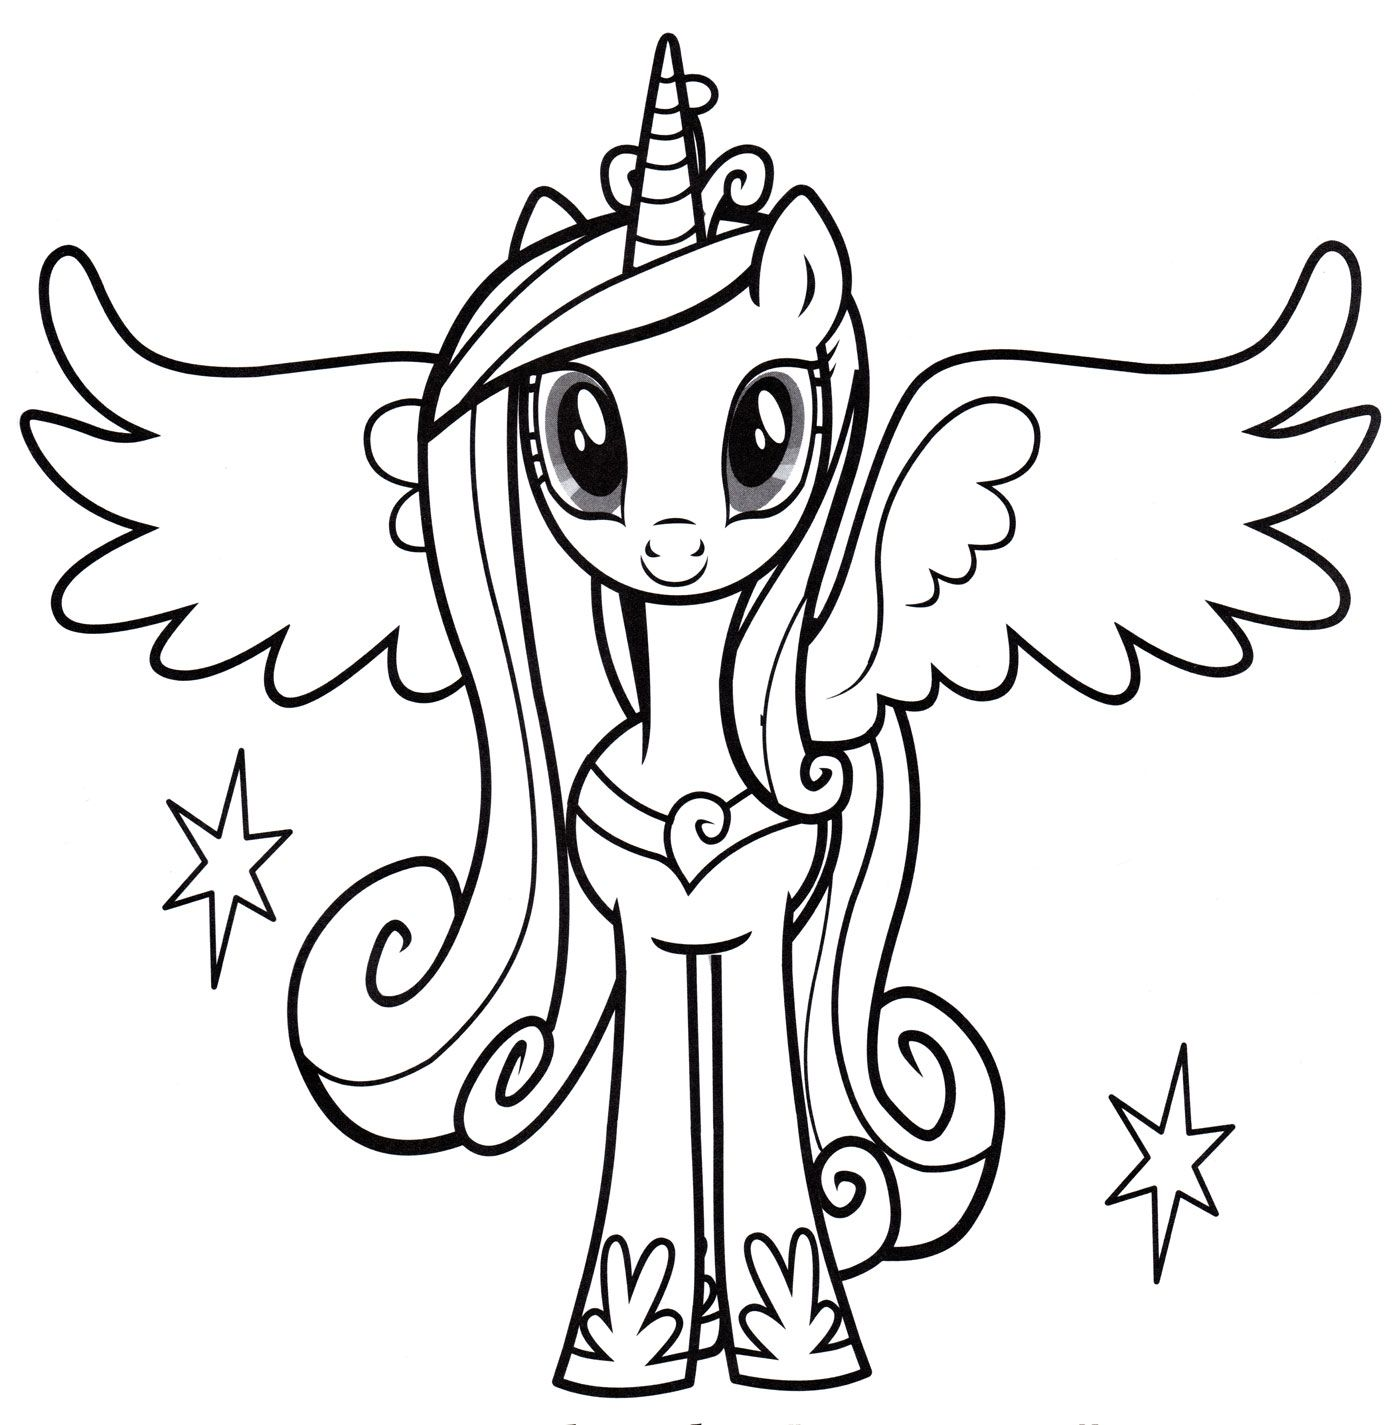 Pin By Erin Baliya On Princess Cadence My Little Pony Coloring My Little Pony Printable Christmas Coloring Pages